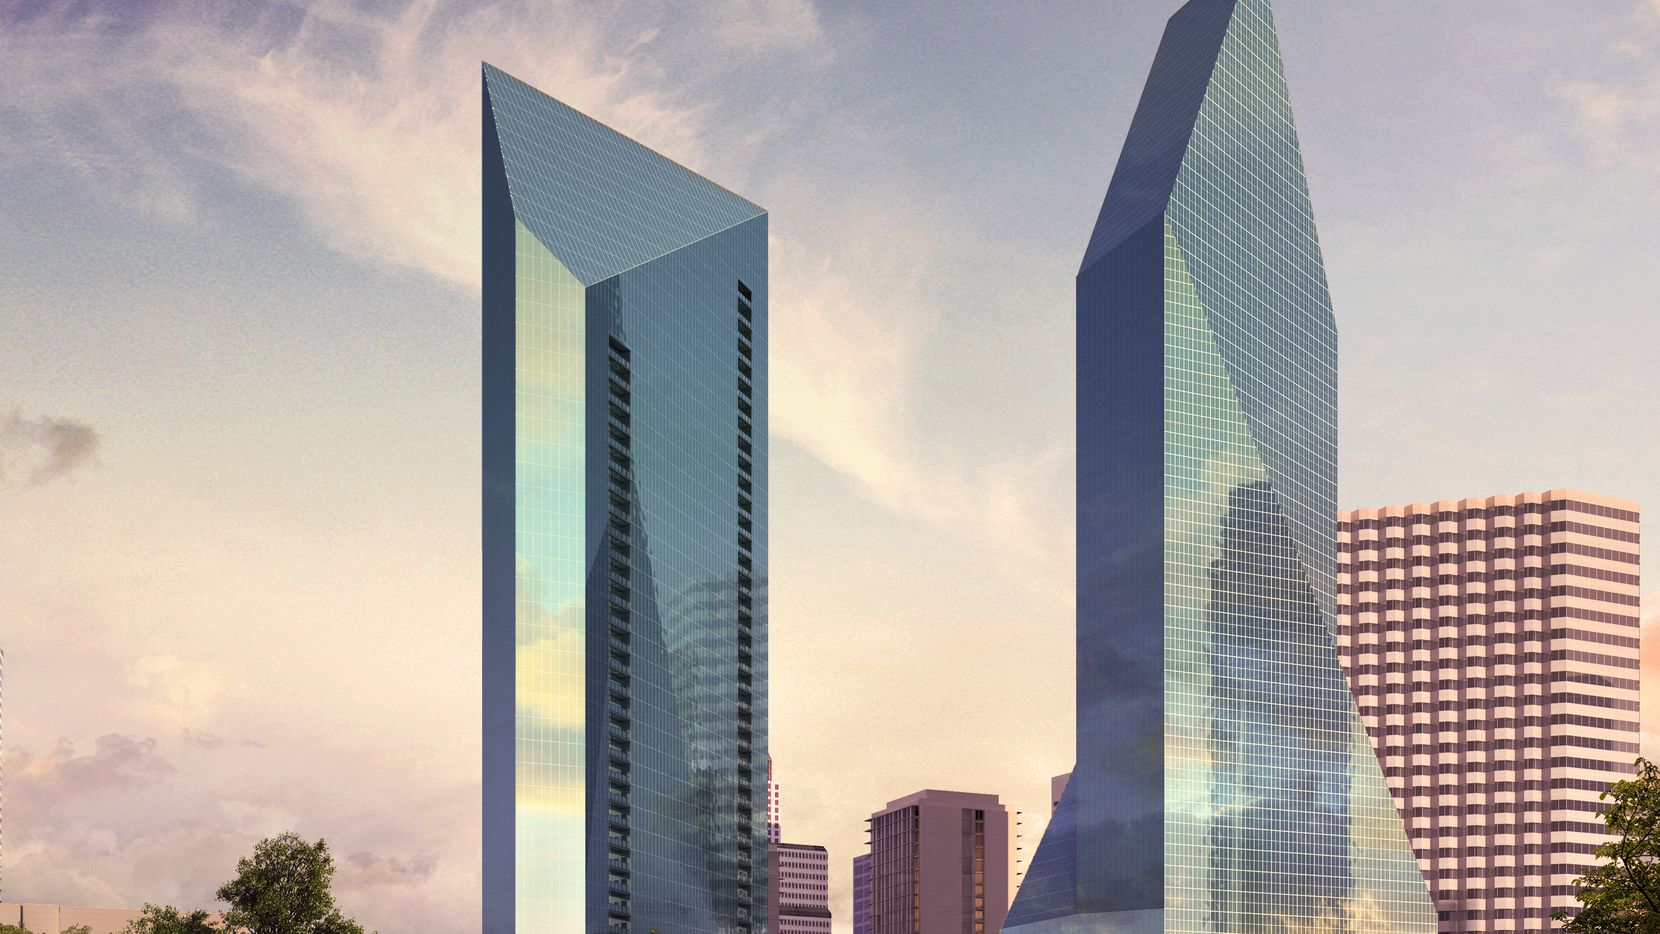 Striking new skyscraper in downtown Dallas will be tallest in decades